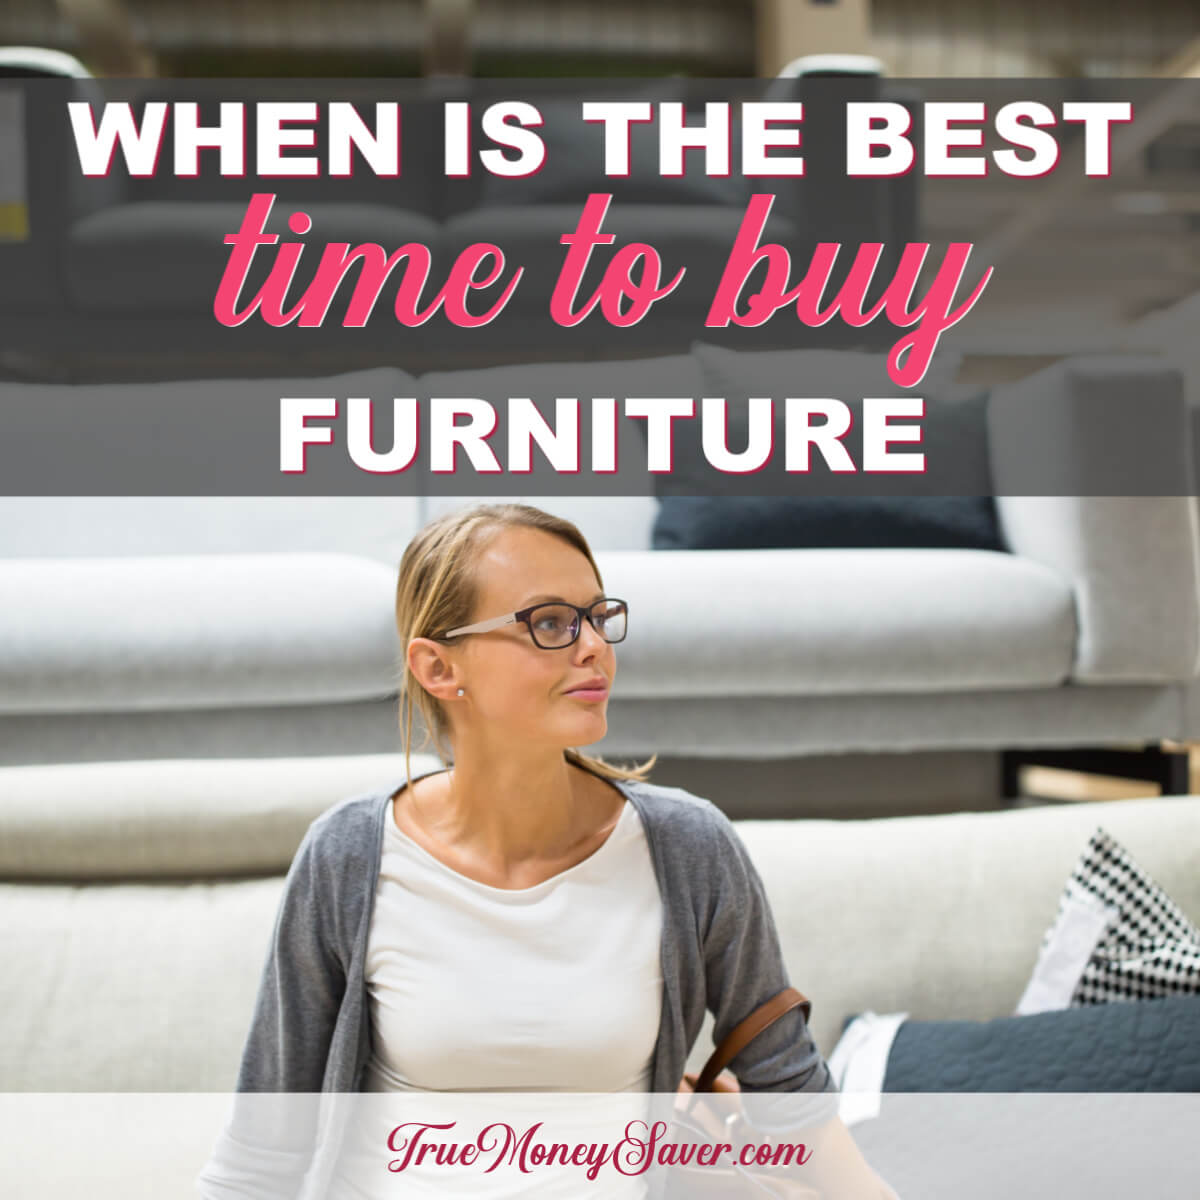 When Is The Best Time To Buy Furniture This Year?